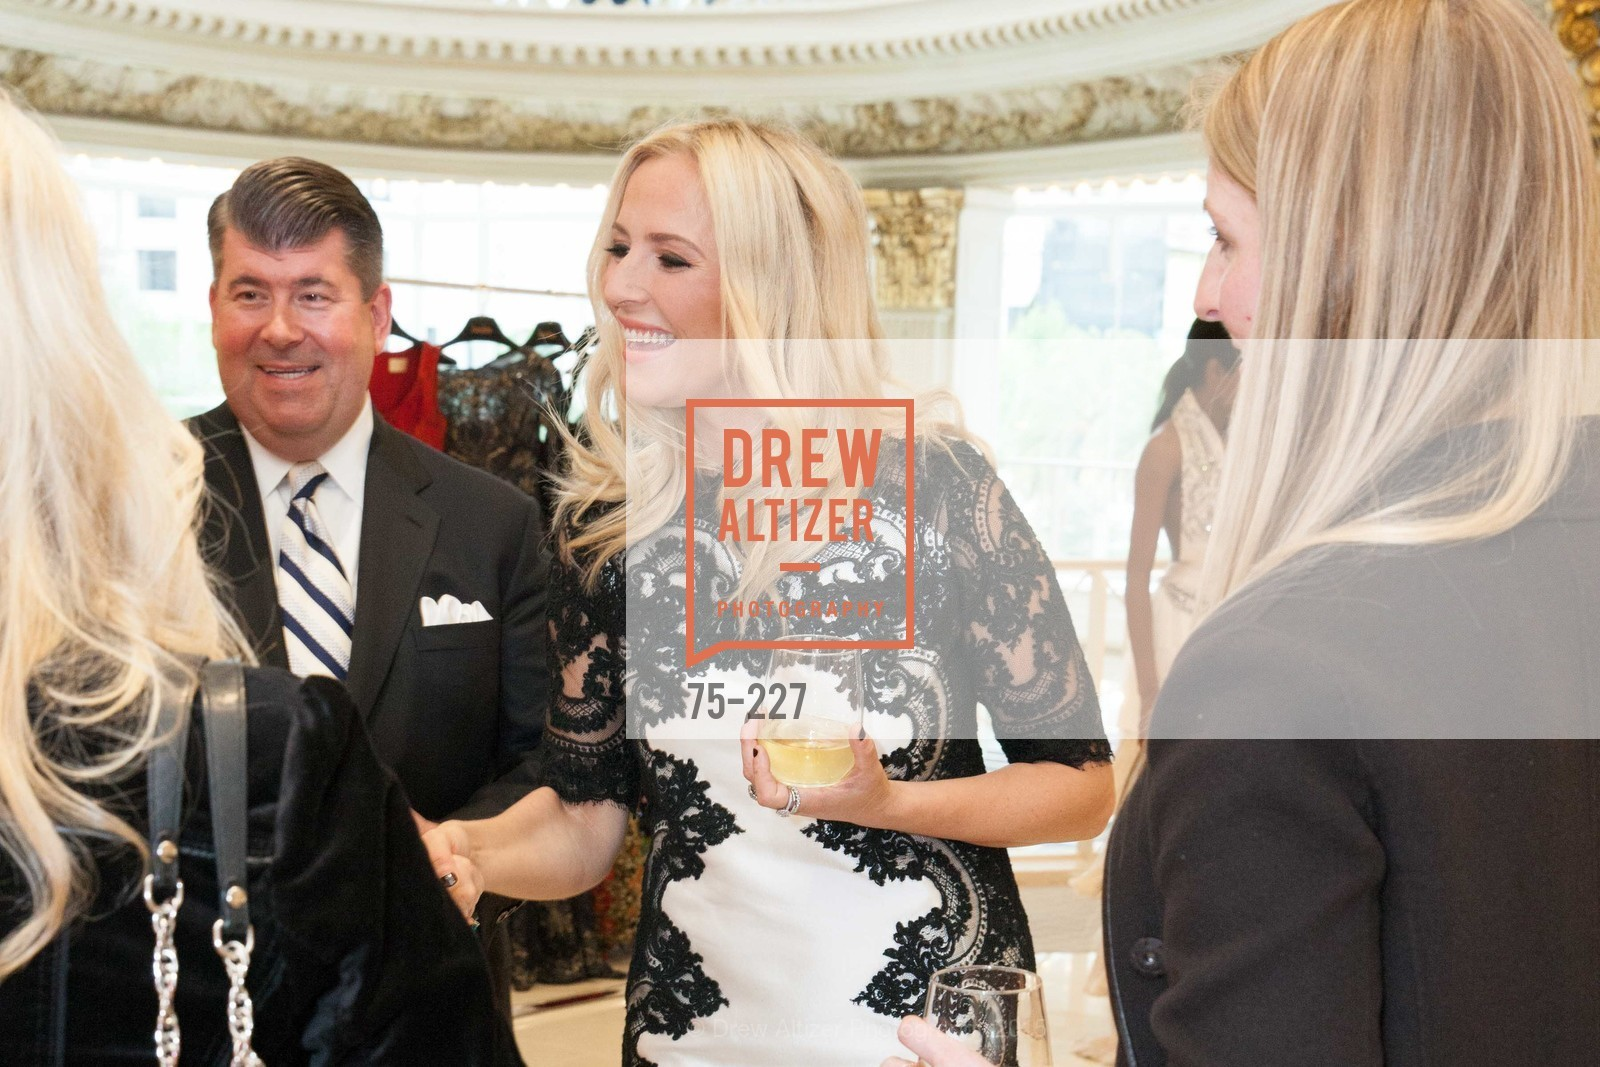 Alan Morrell, Keren Craig, Keren Craig Personal Appearance for Marchesa Fall Trunk Show, Neiman Marcus, May 7th, 2015,Drew Altizer, Drew Altizer Photography, full-service agency, private events, San Francisco photographer, photographer california